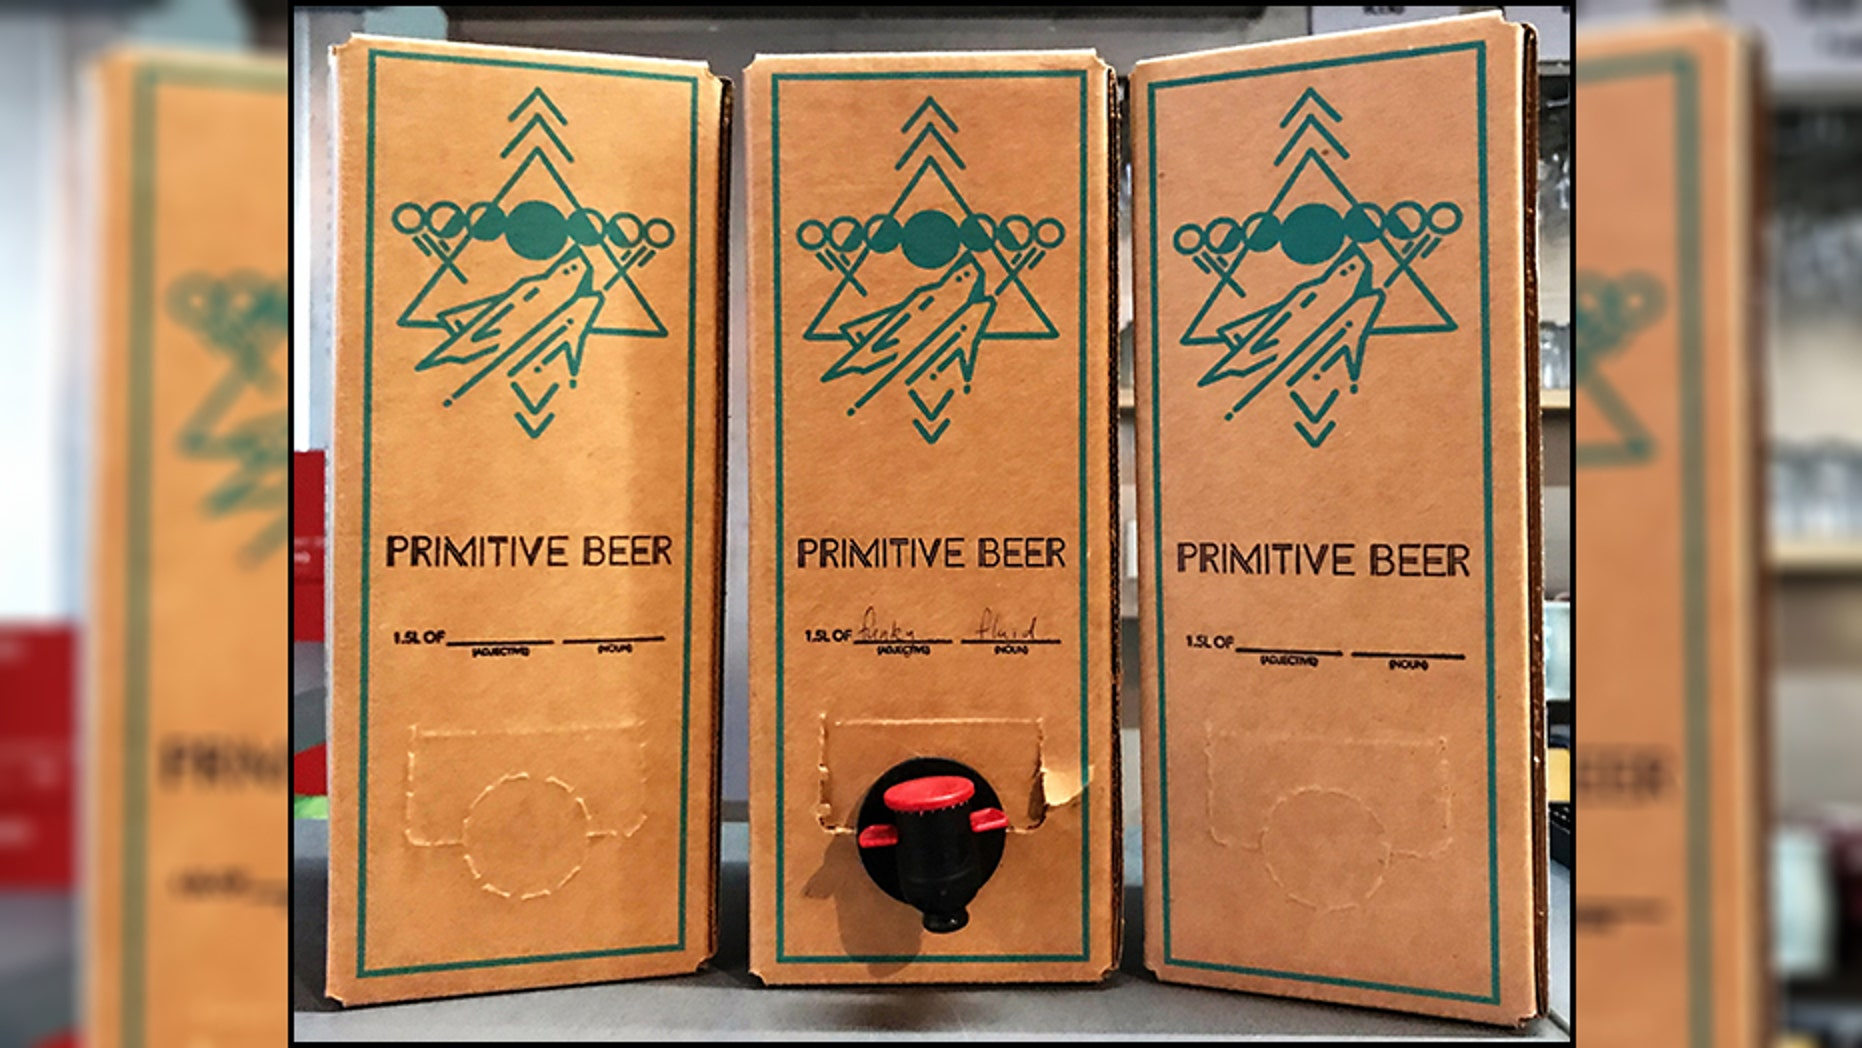 A new taproom in Colorado plans to sell their flat Belgian-style ale in boxes.